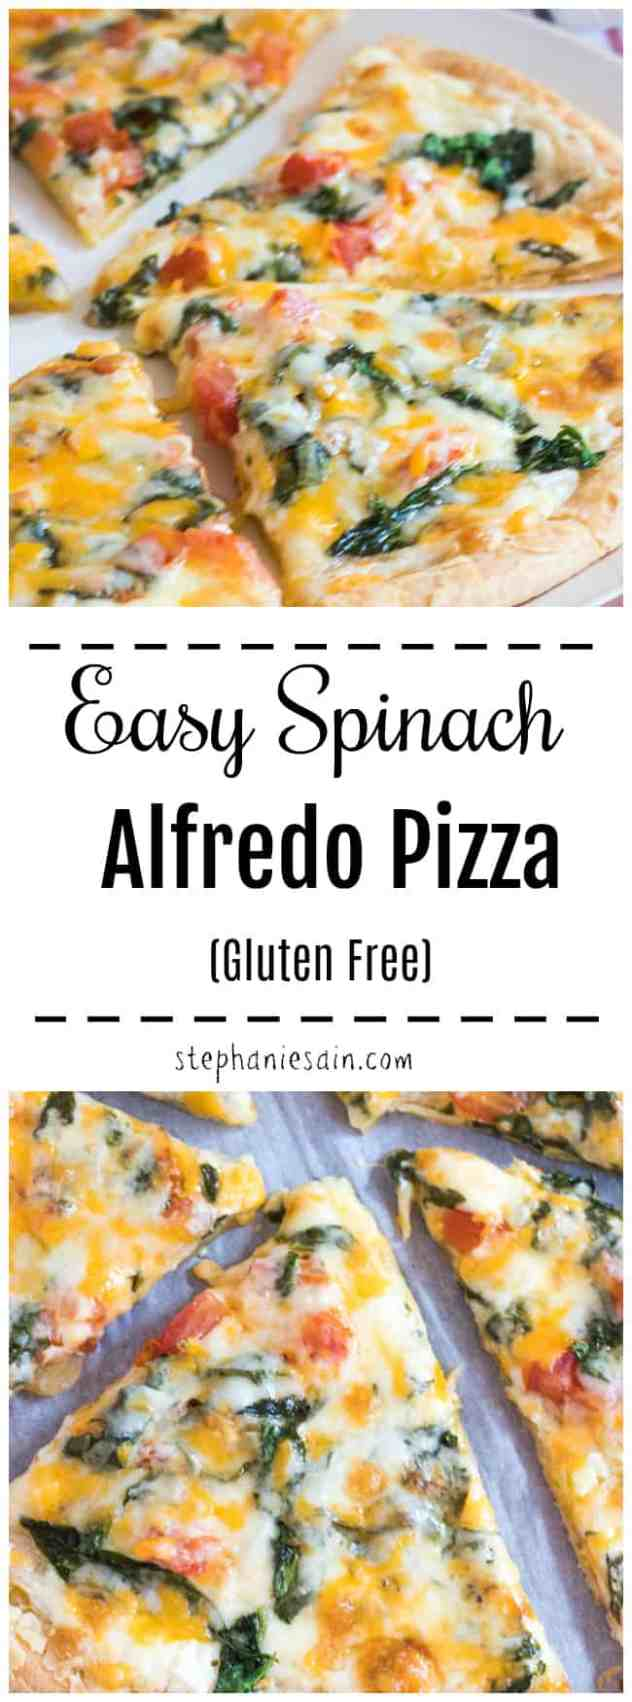 This Easy Spinach Alfredo Pizza is topped with a creamy delicious homemade alfredo, then followed by a combo of spinach, tomato, & onion. If you're a fan of Alfredo then this is for you! Perfect way to switch up Pizza night! Gluten Free.